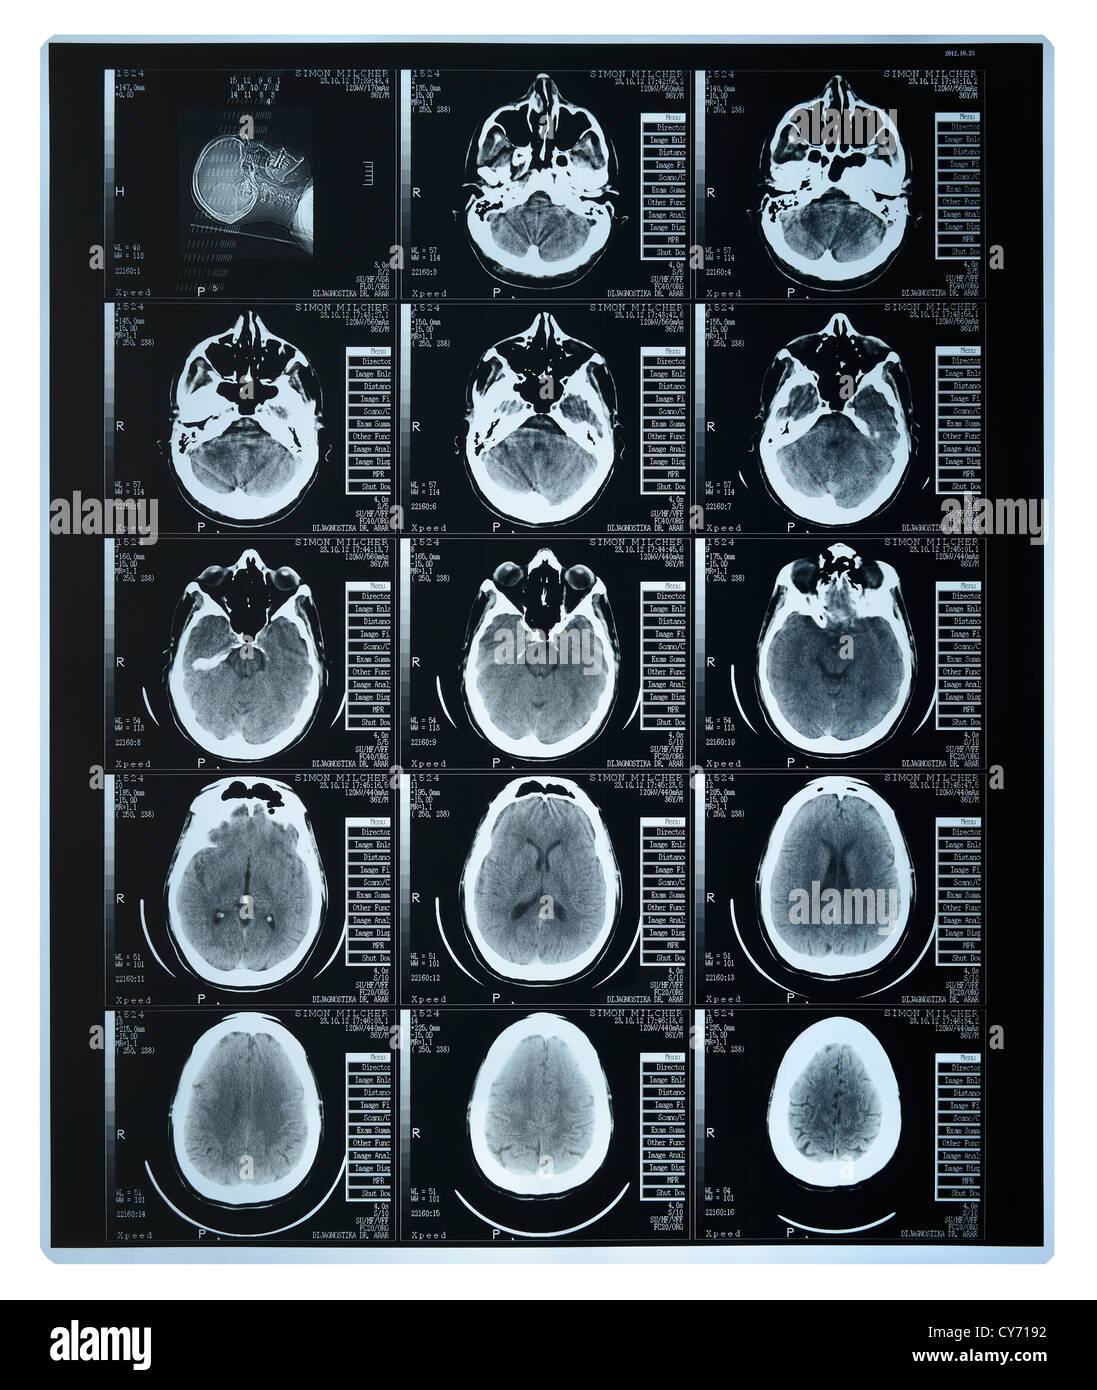 Cat Scan of a Brain - Stock Image